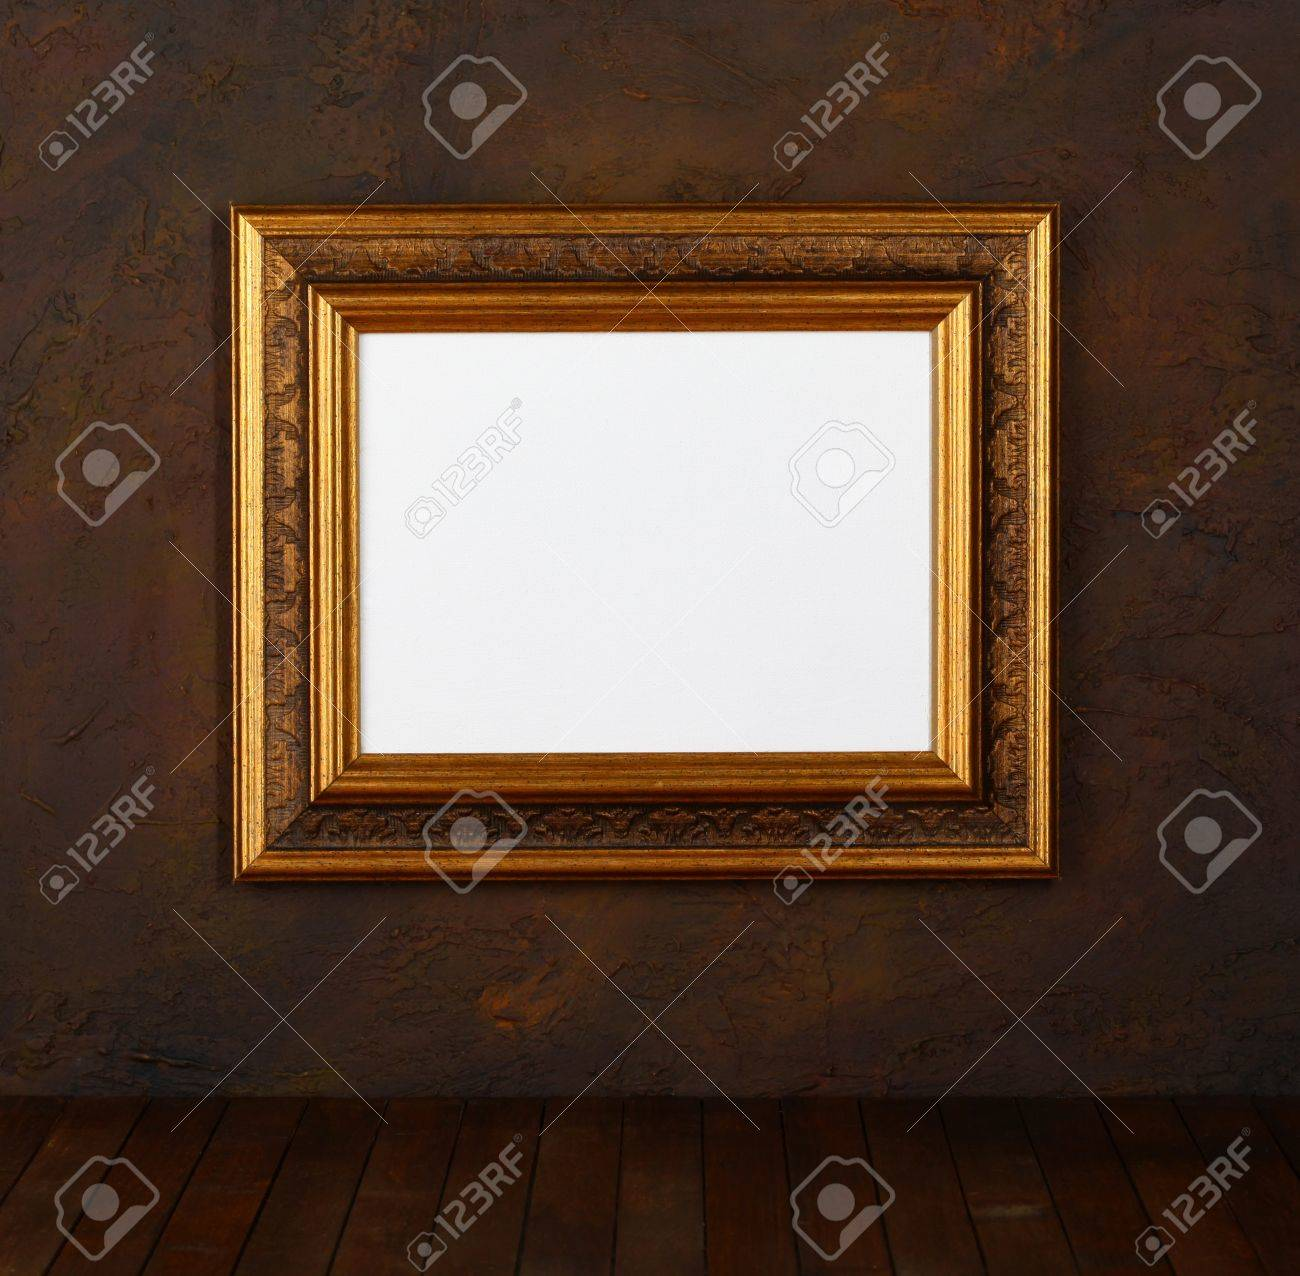 Old Frames Over The Grunge Wall Background Stock Photo, Picture And ...